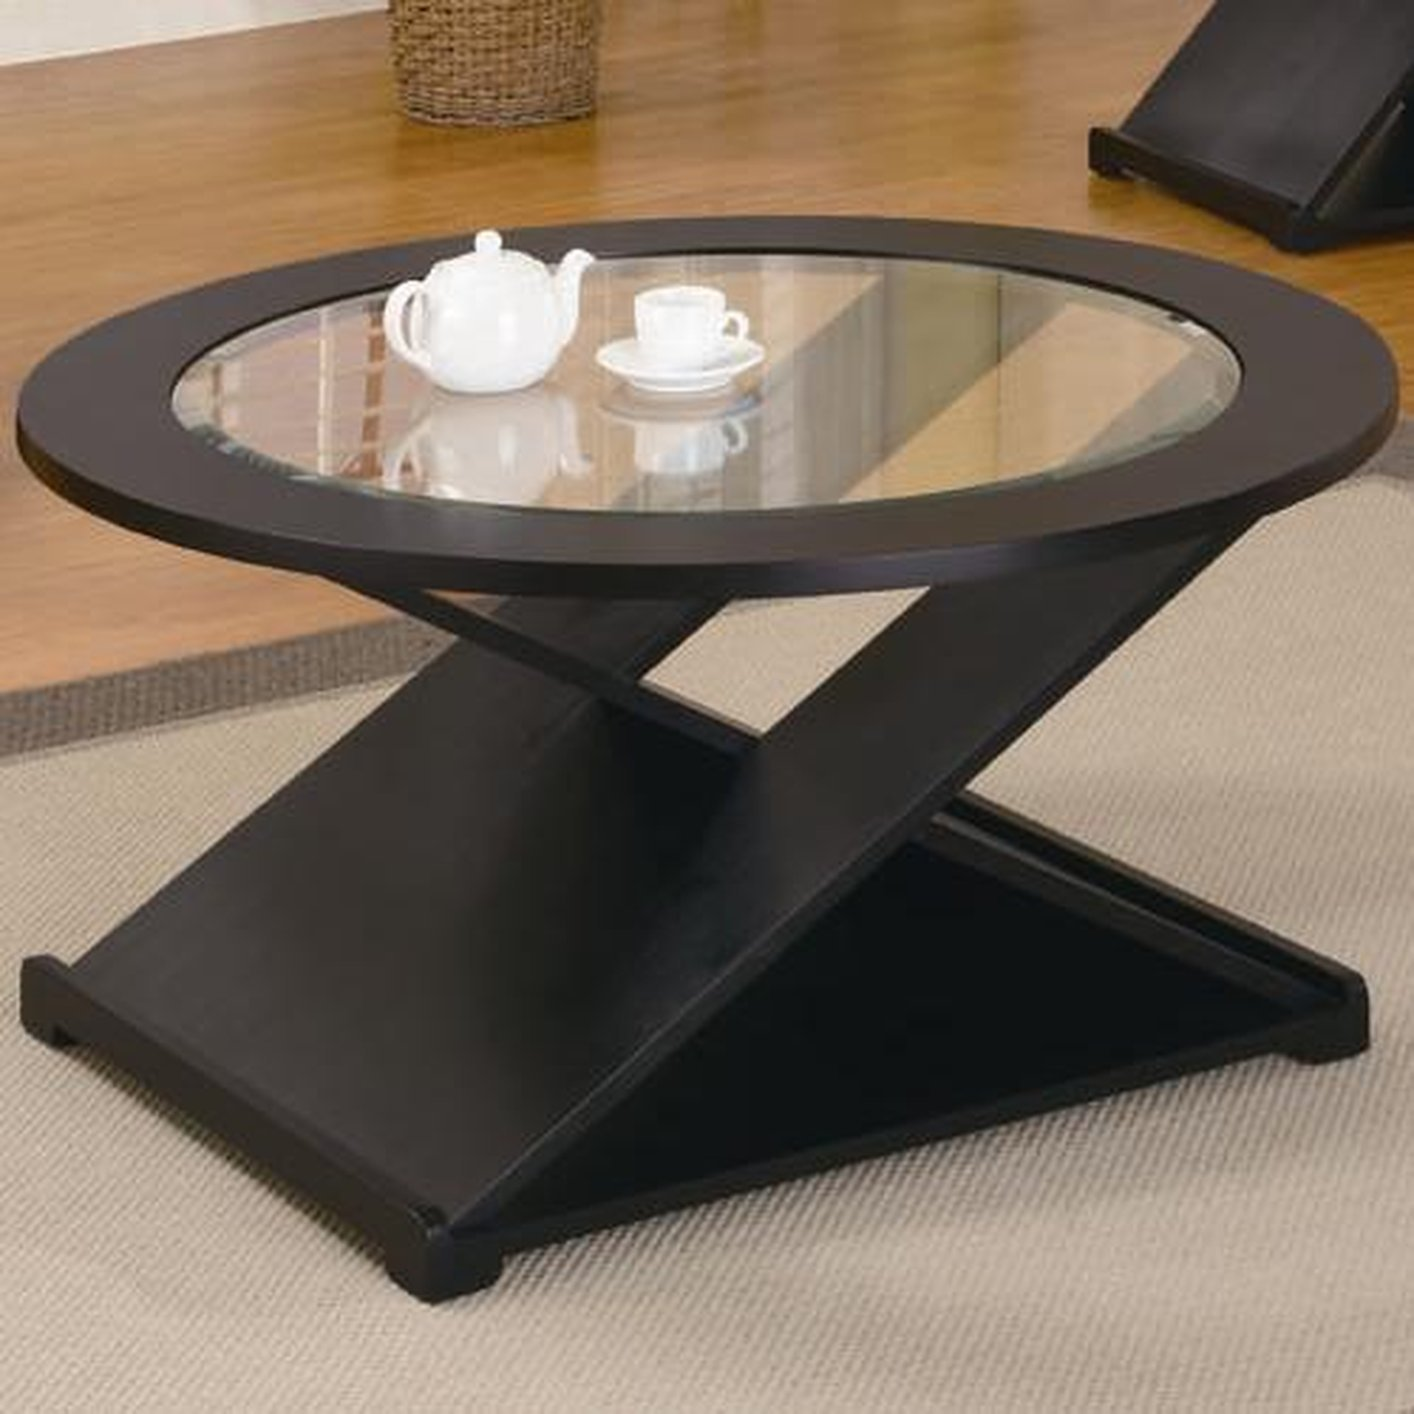 Coaster 701501 black glass coffee table set steal a sofa furniture outlet los angeles ca Glass coffee table set